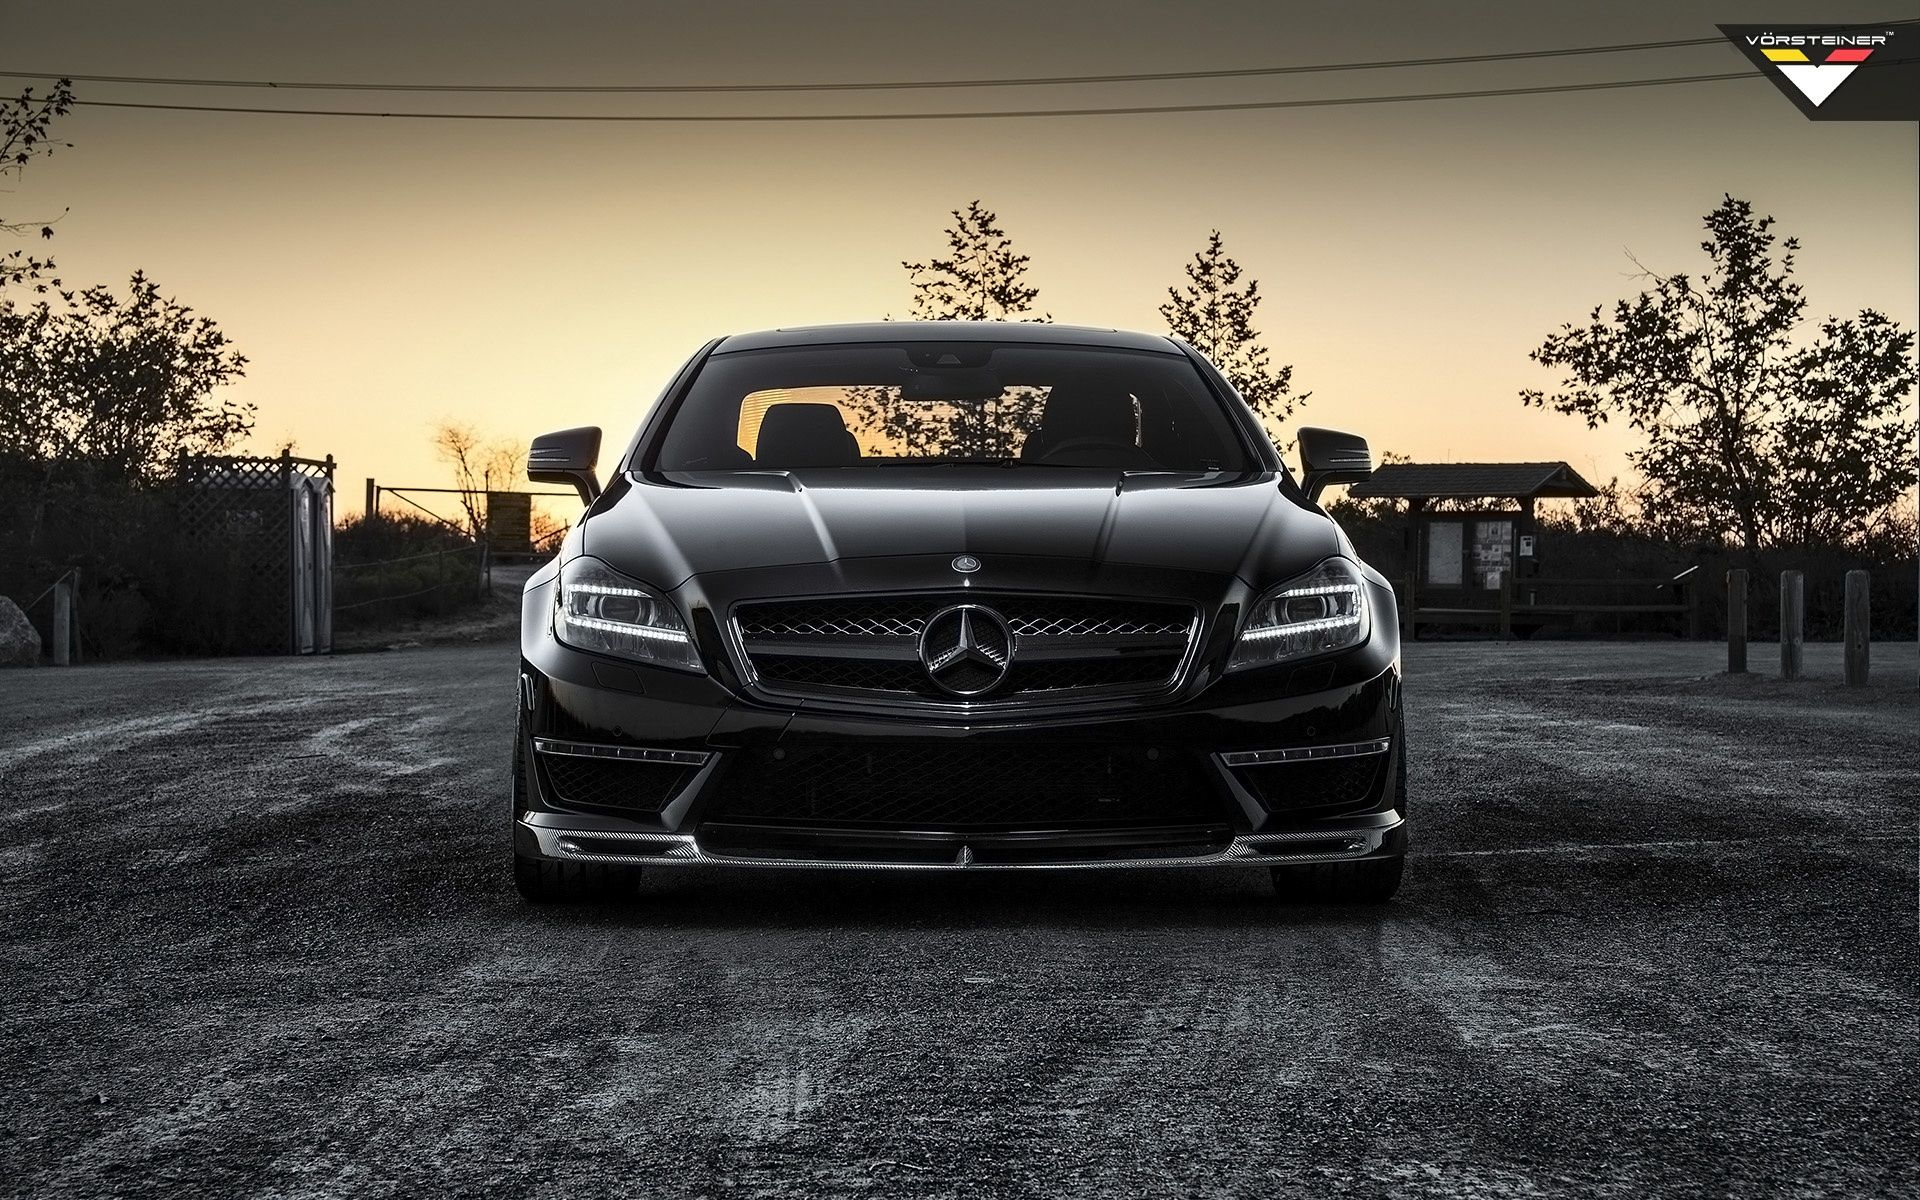 Mercedes Amg Wallpaper - WallpaperSafari